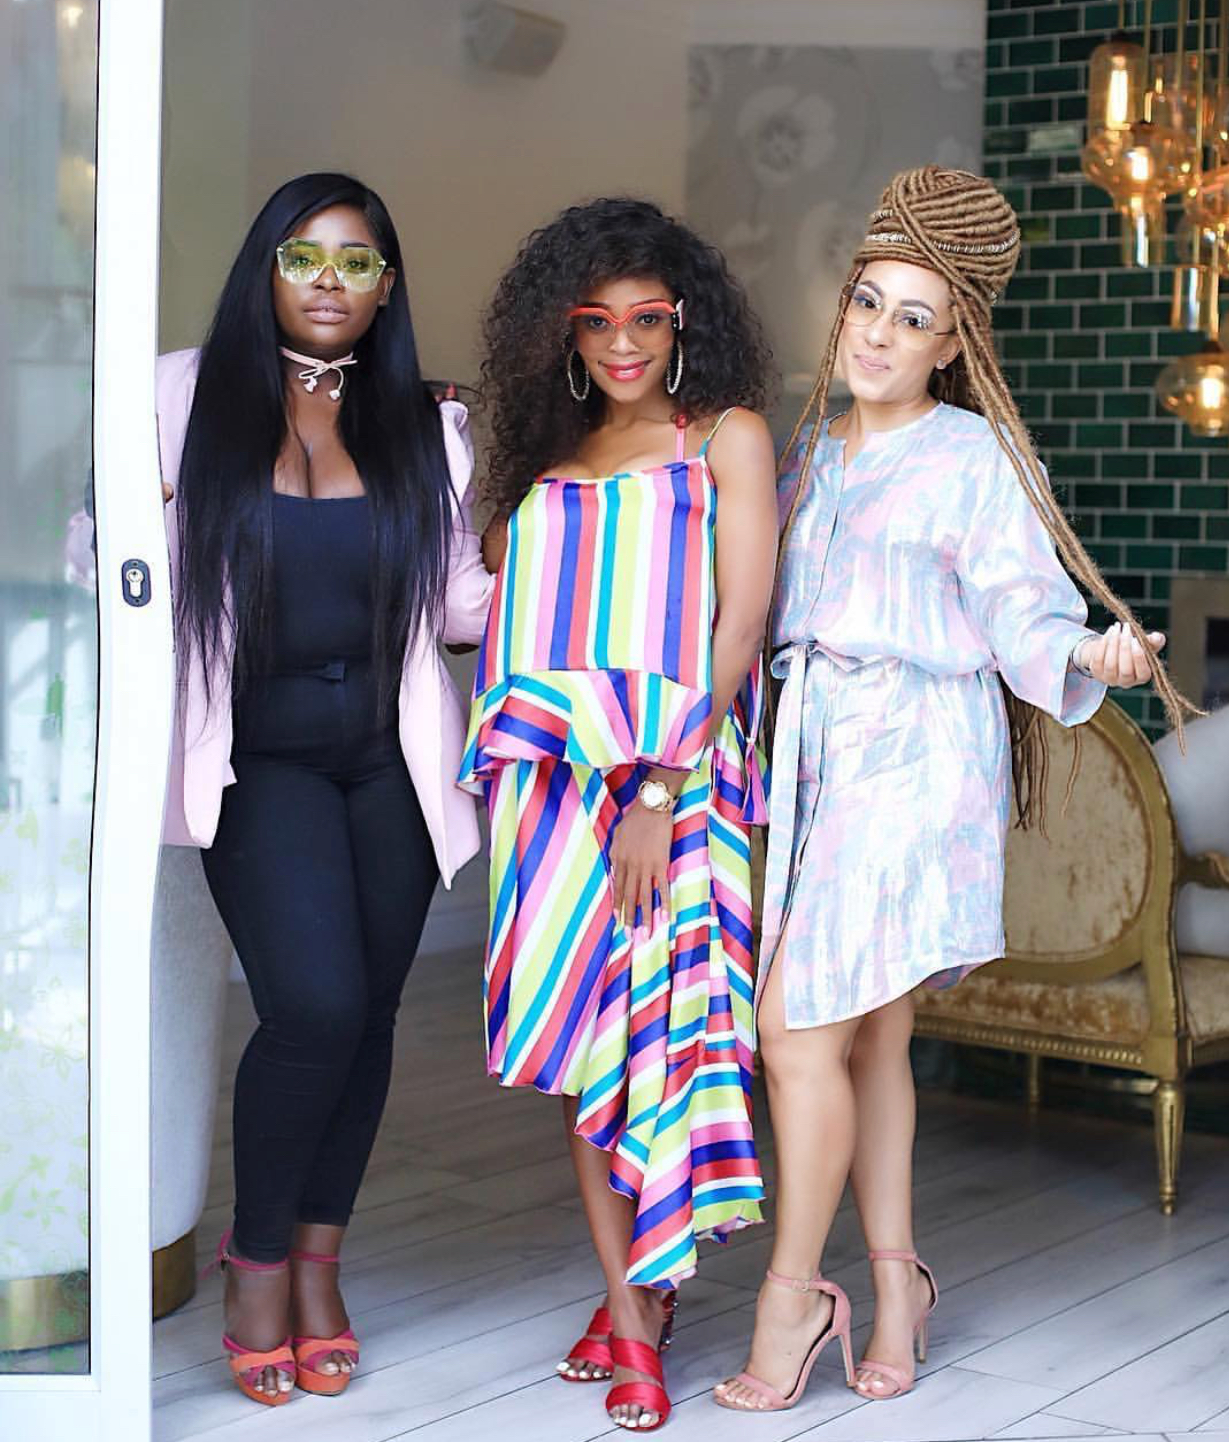 azuri BEAUTY BAR - A LETTER FROM US